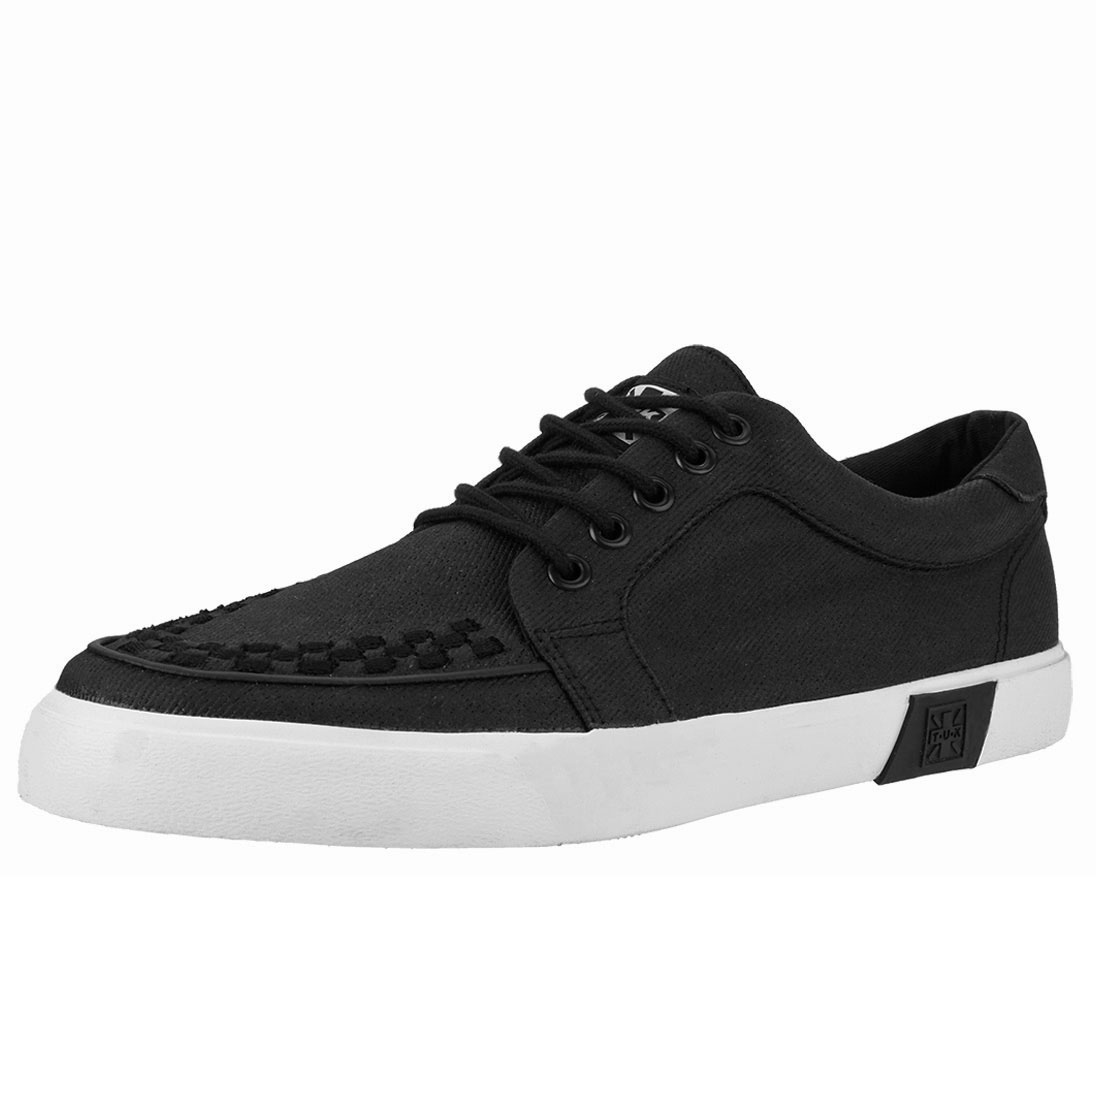 Black Waxed Twill No Ring VLK creeper style sneaker by Tred Air UK (Vegan)